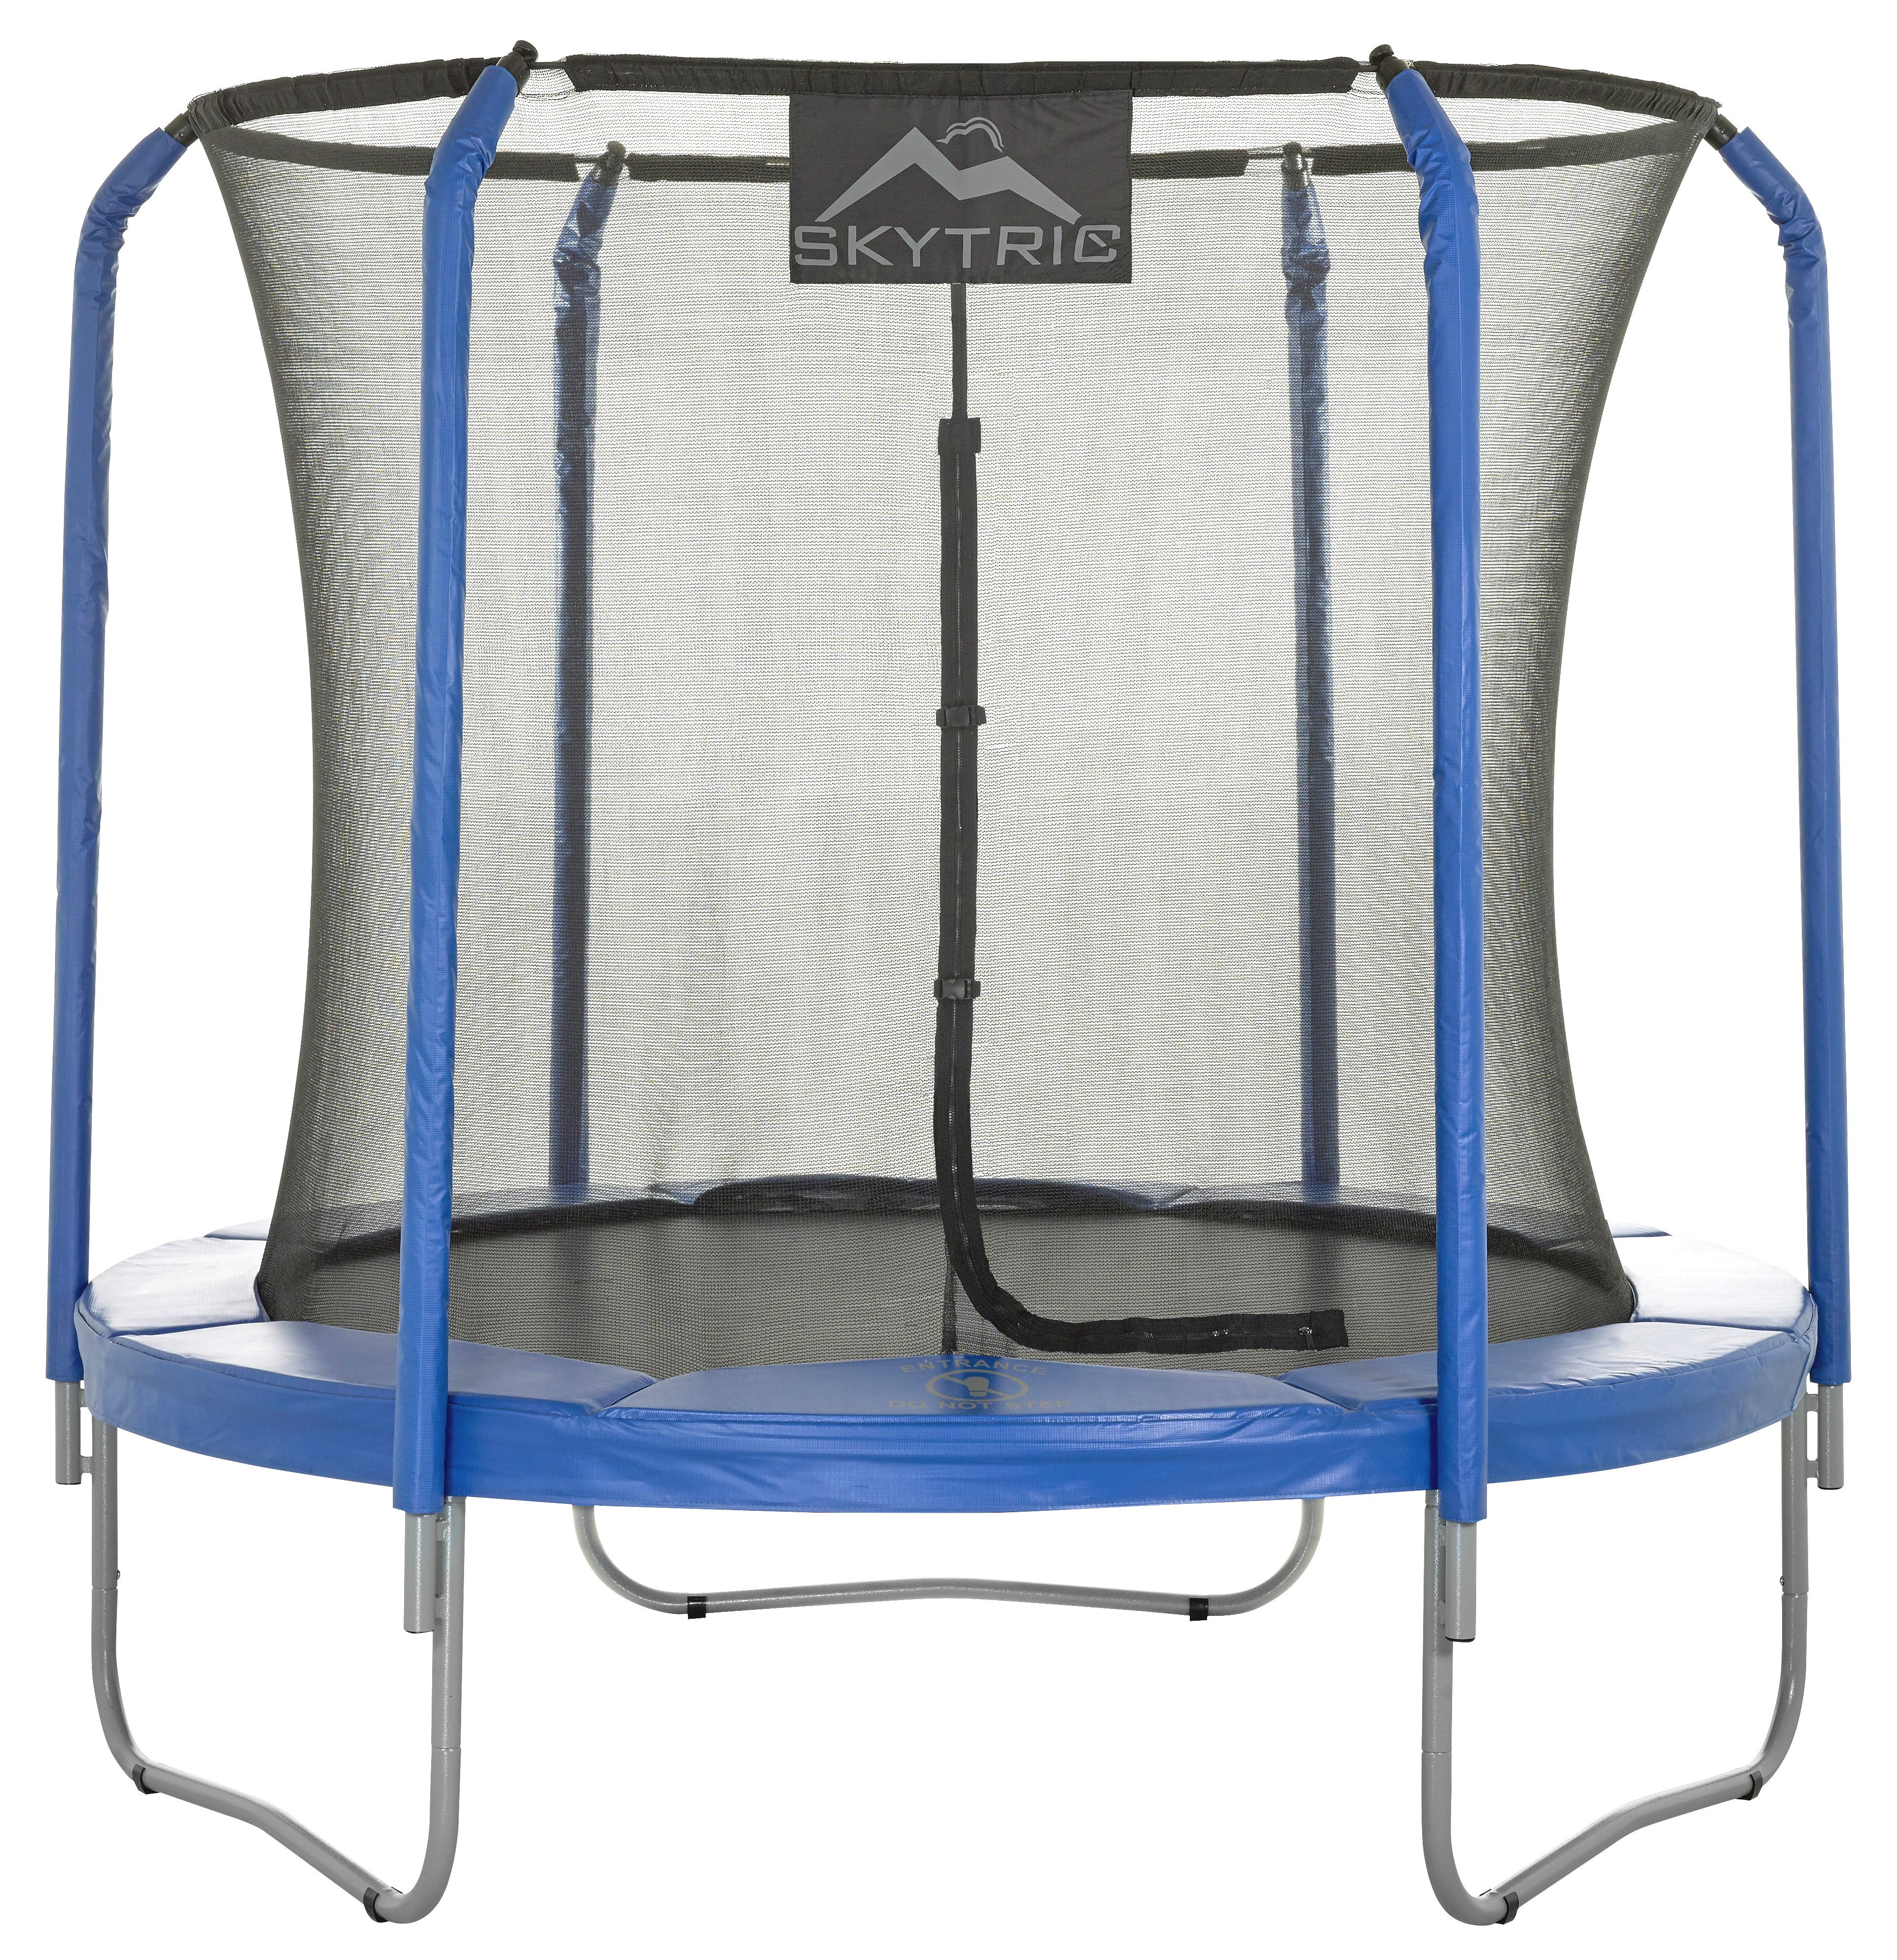 8Ft Large Trampoline and Enclosure Set   Garden & Outdoor Trampoline with Safety Net, Mat, Pad   Skytric